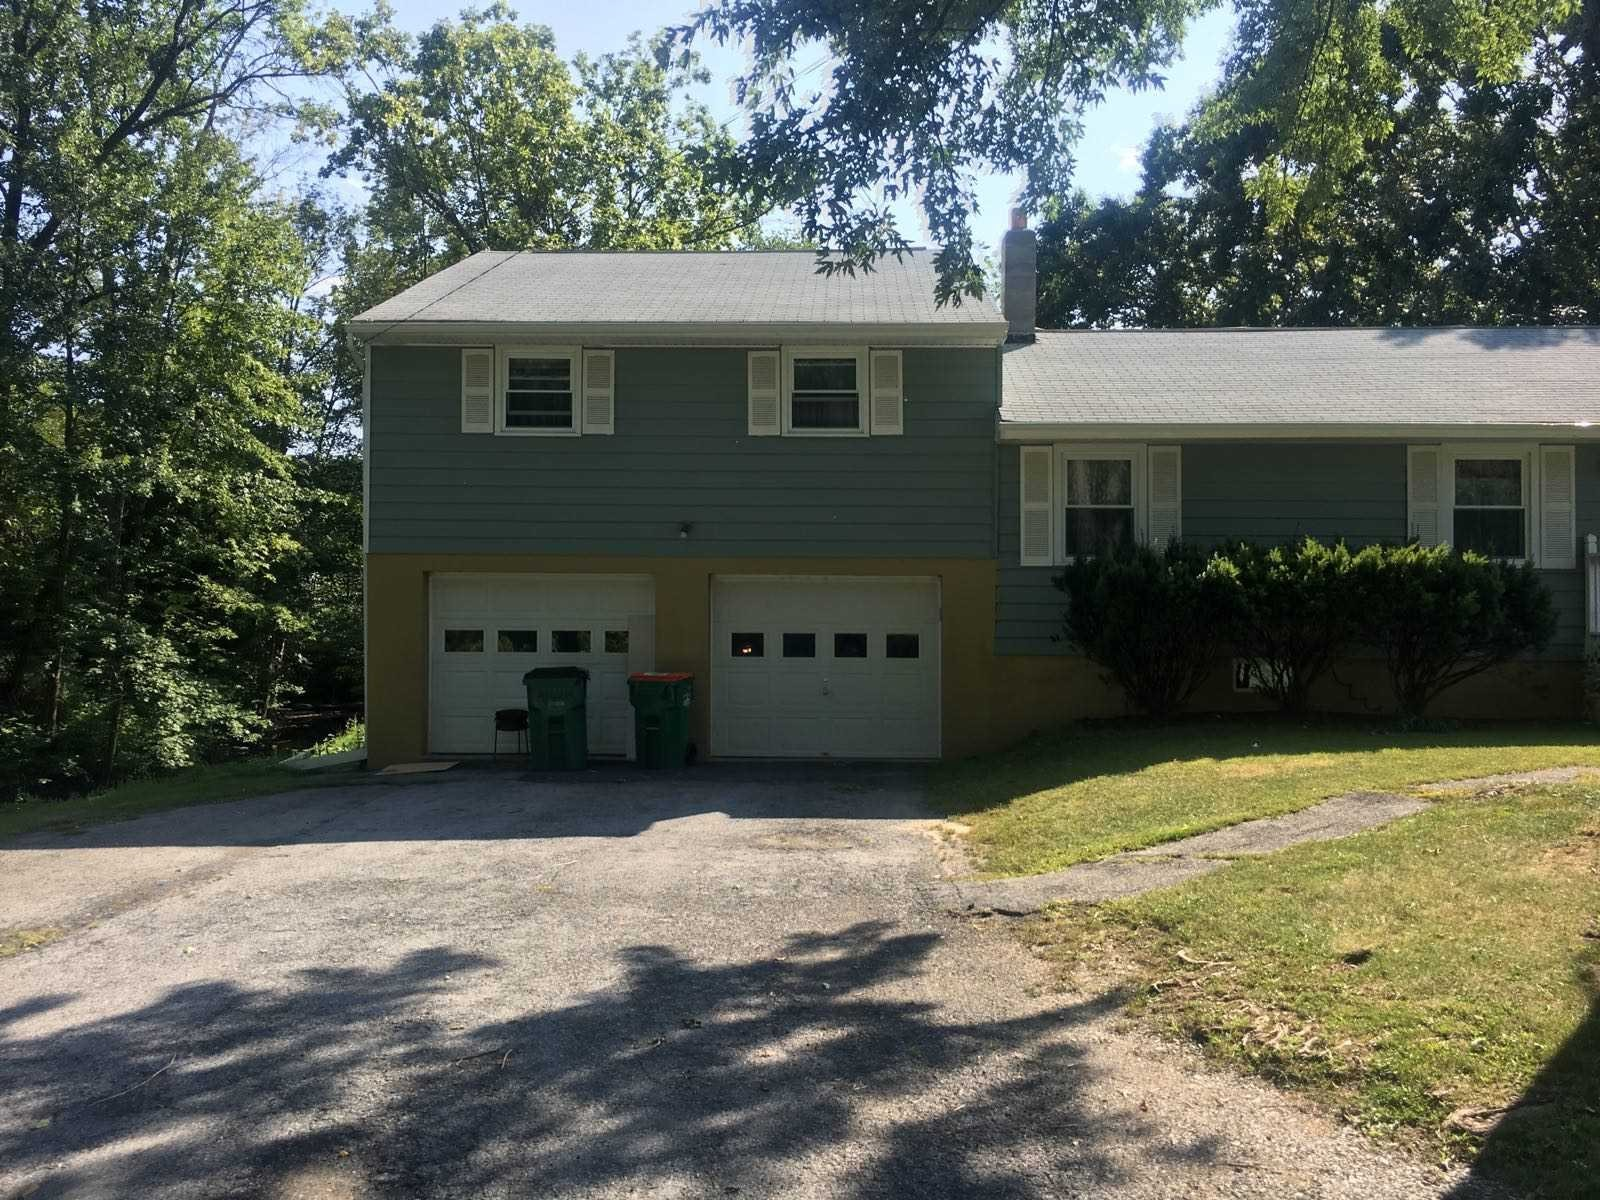 Single Family Home for Sale at 109 WEST Road 109 WEST Road Pleasant Valley, New York 12569 United States